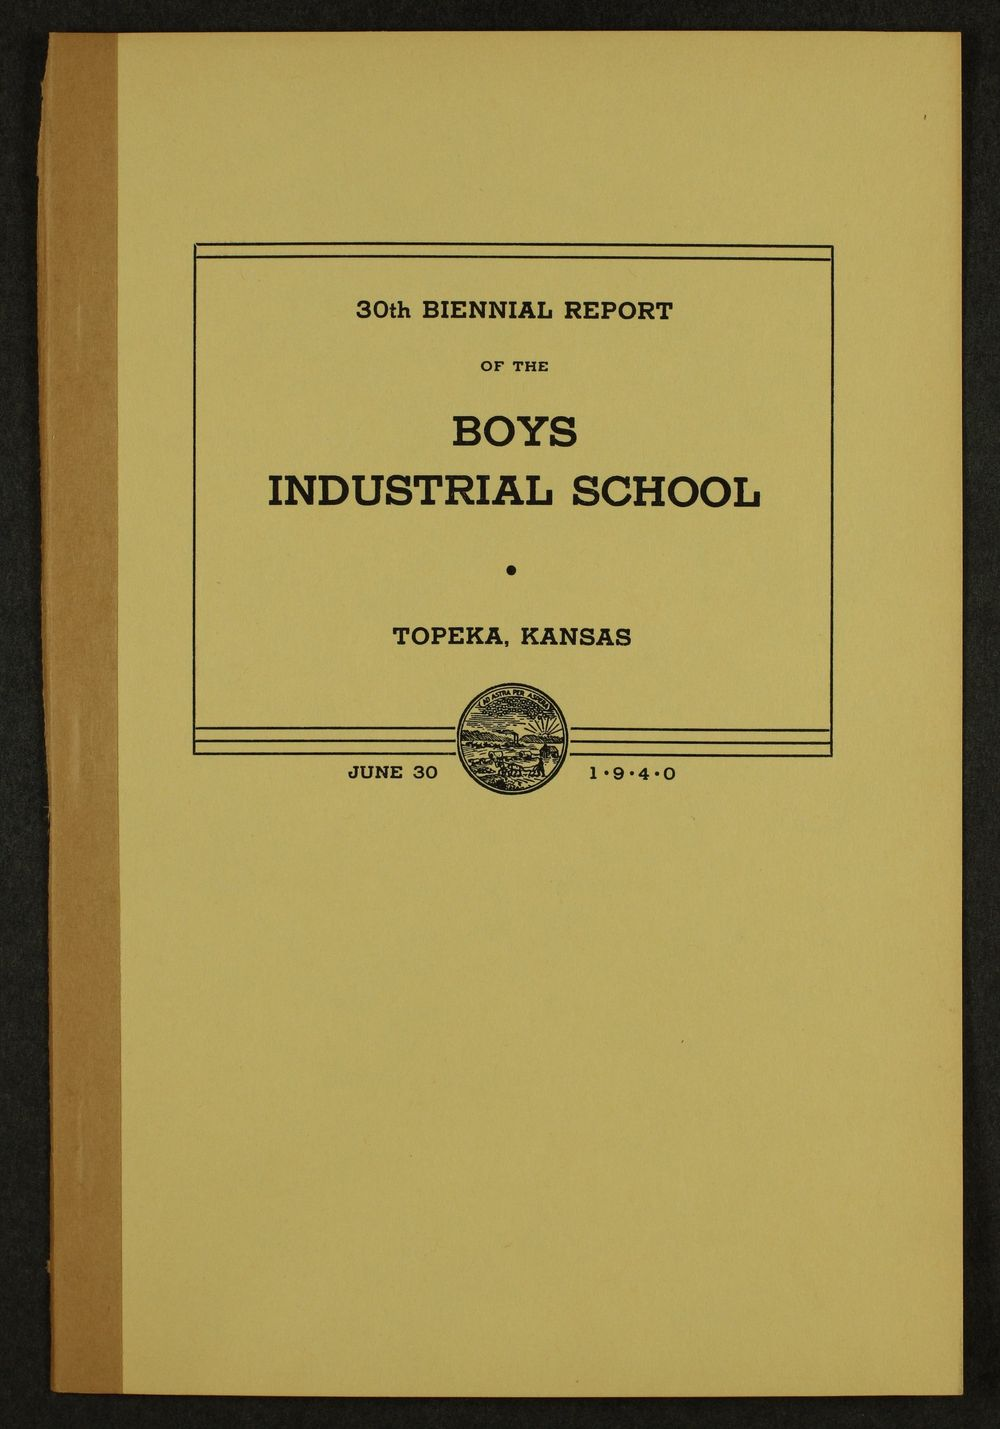 Biennial report of the Boys Industrial School, 1940 - Front Cover